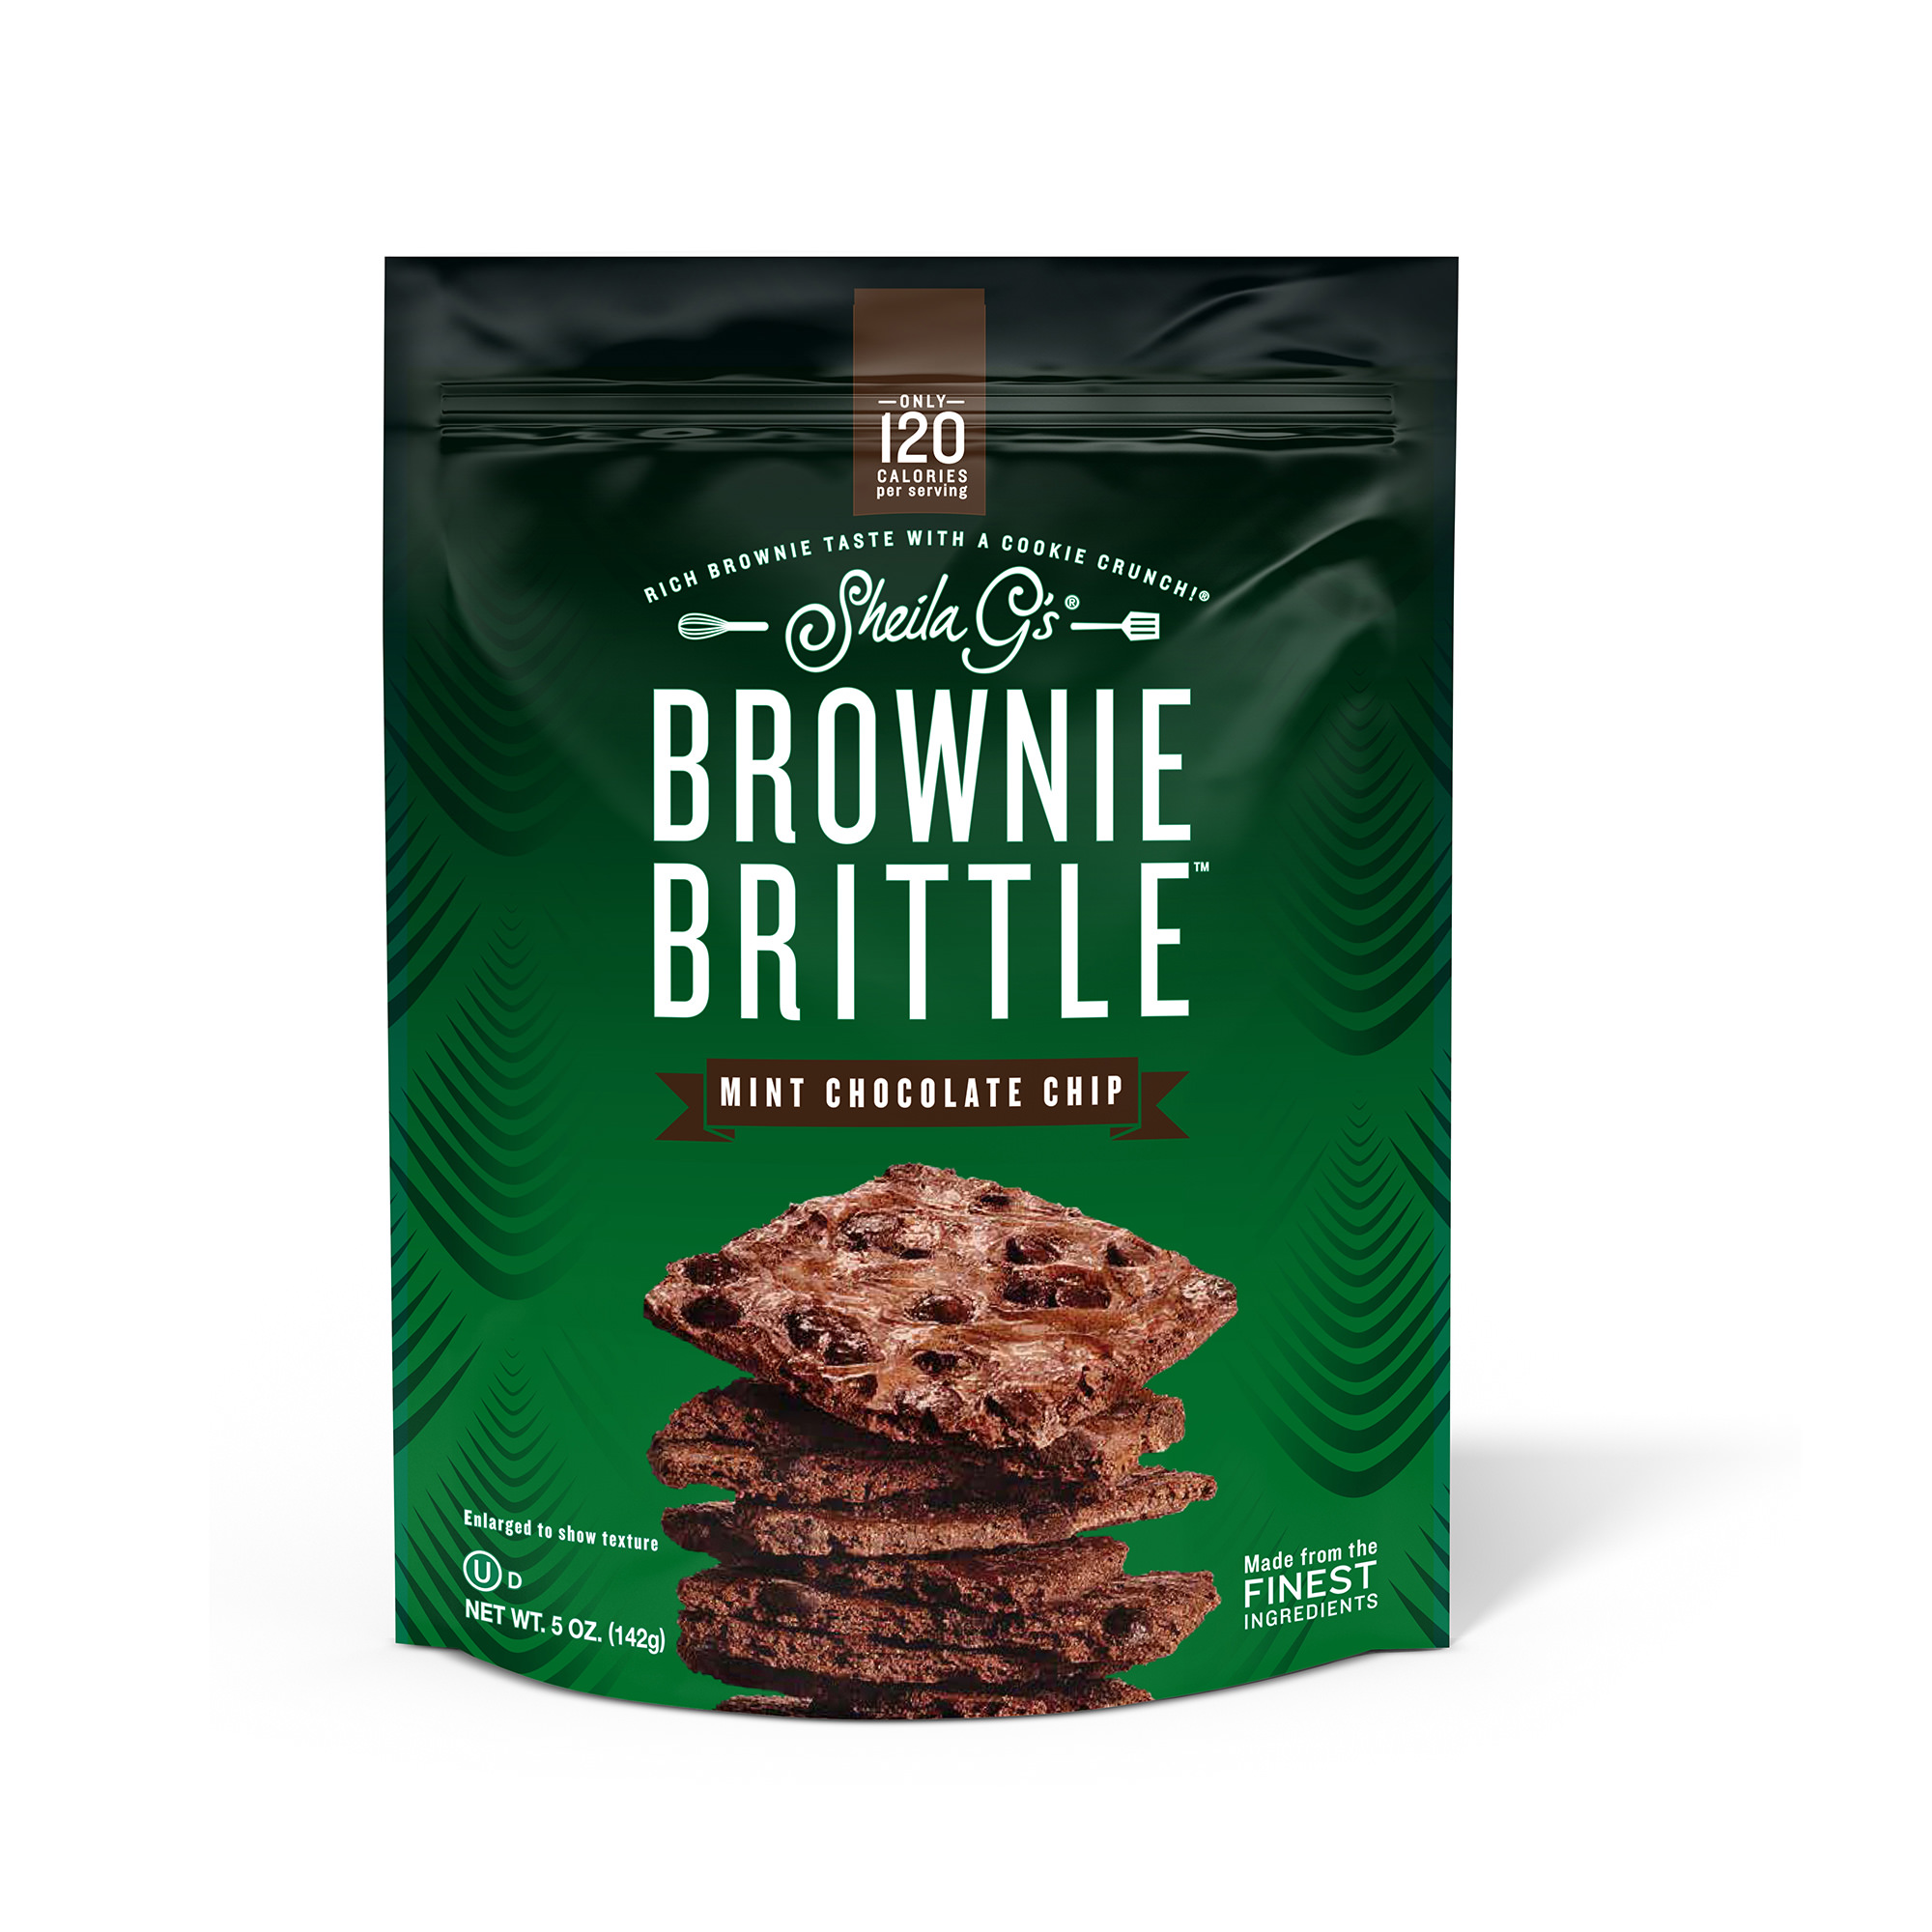 Sheila G's Brownie Brittle Mint Chocolate Chip Cookie Snack Thins, 5oz